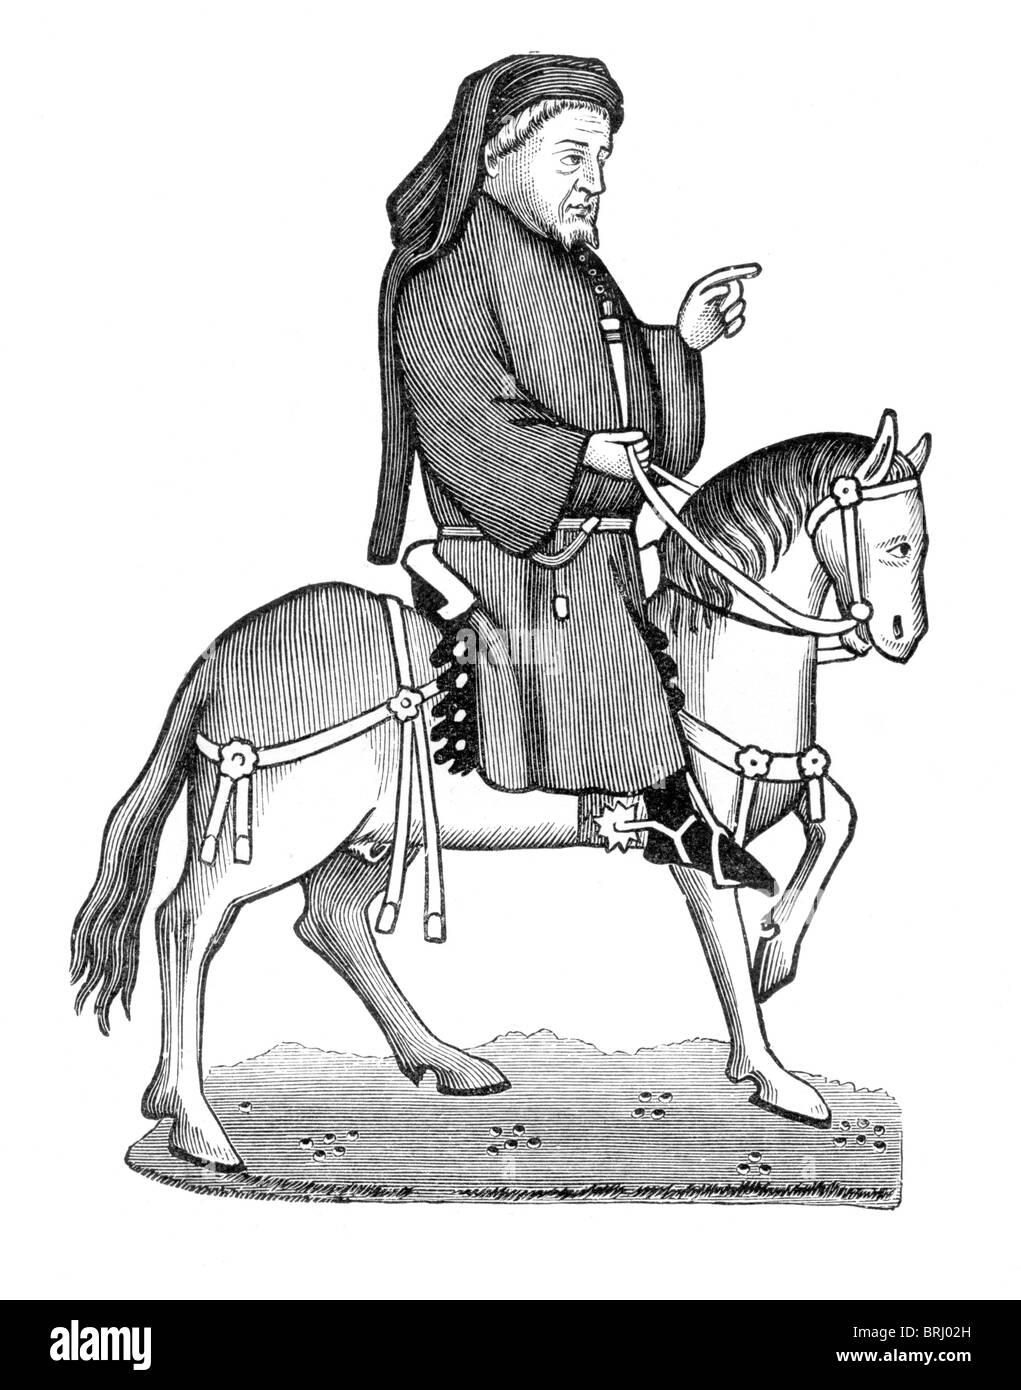 Black and White Illustration; Geoffrey Chaucer on Horseback, from the Ellesmere Manuscript of Canterbury Tales - Stock Image